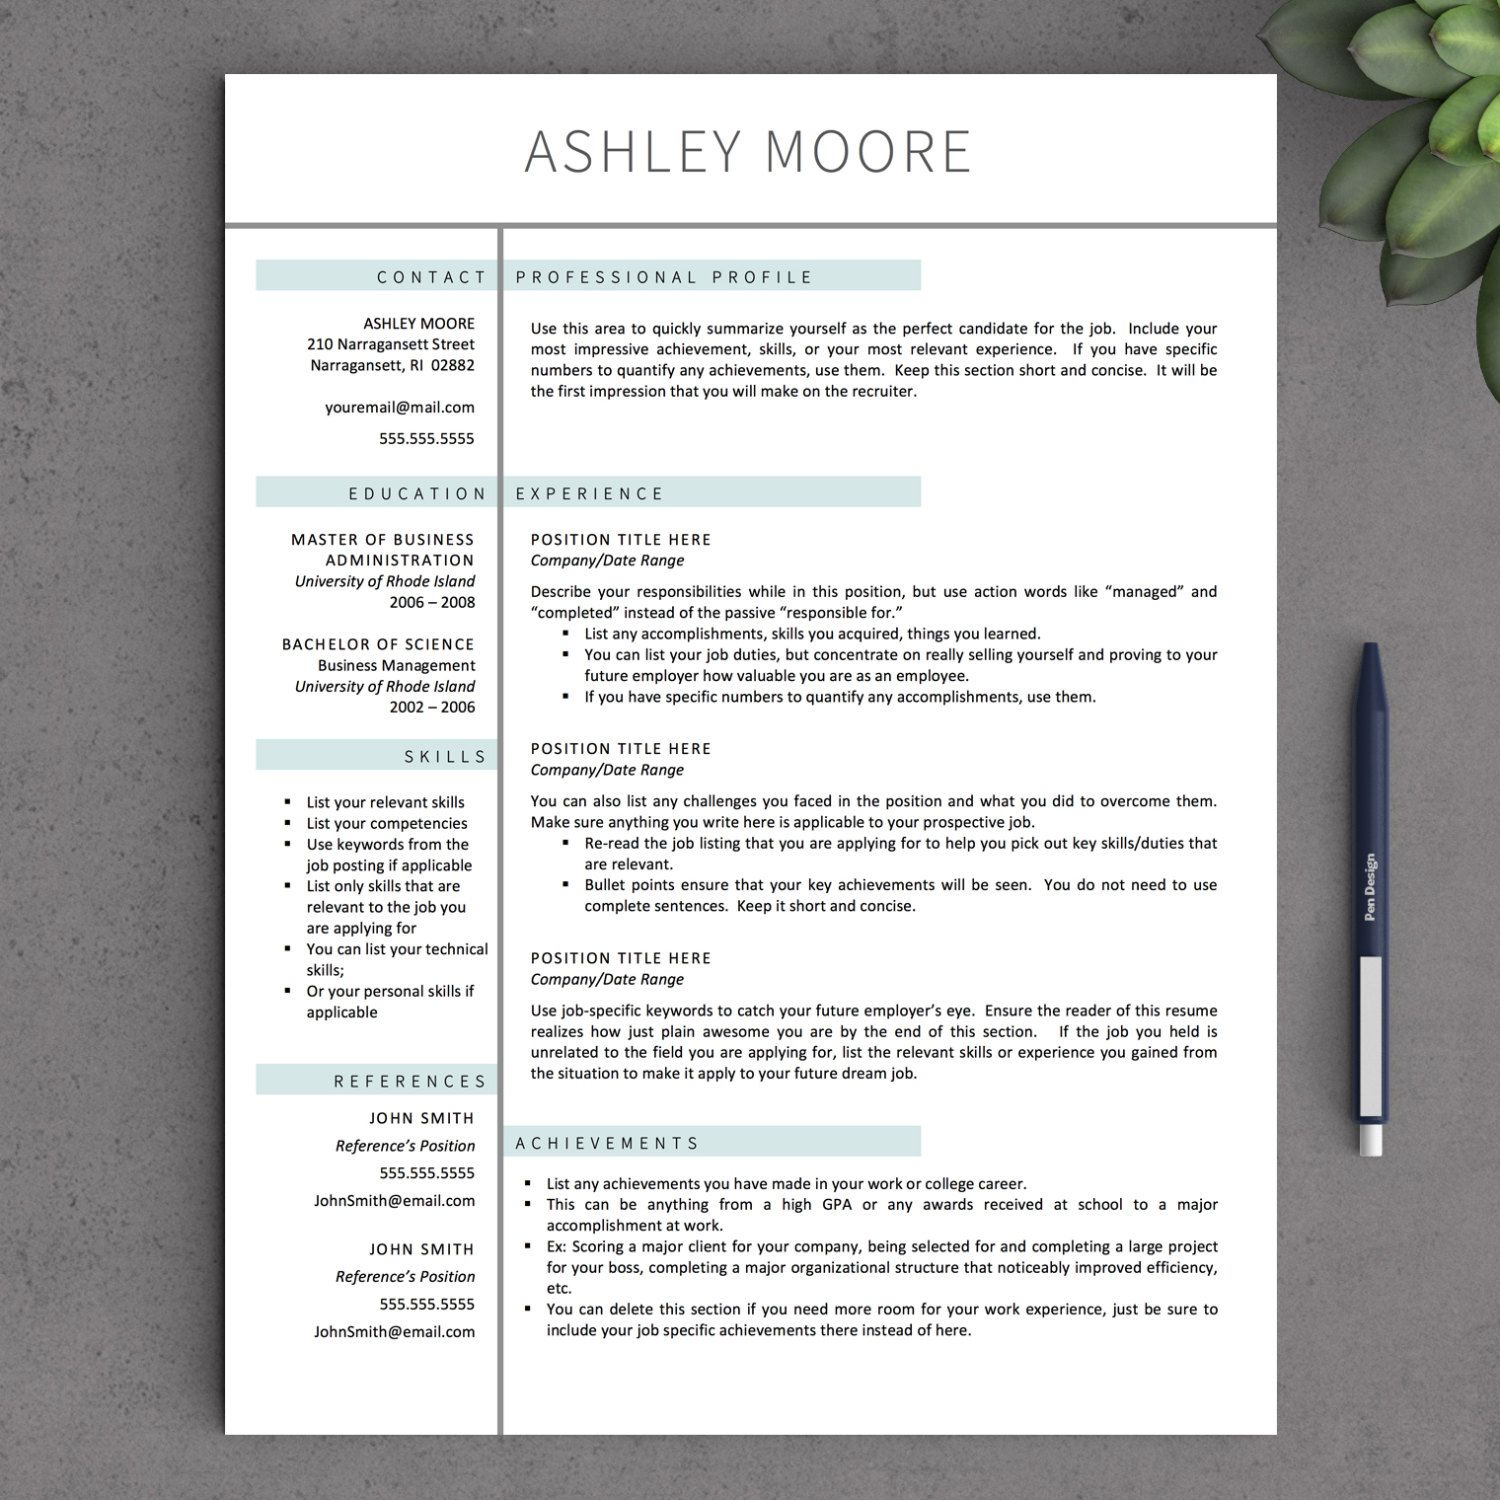 apple pages resume template download apple pages resume template download apple - Pages Resume Templates